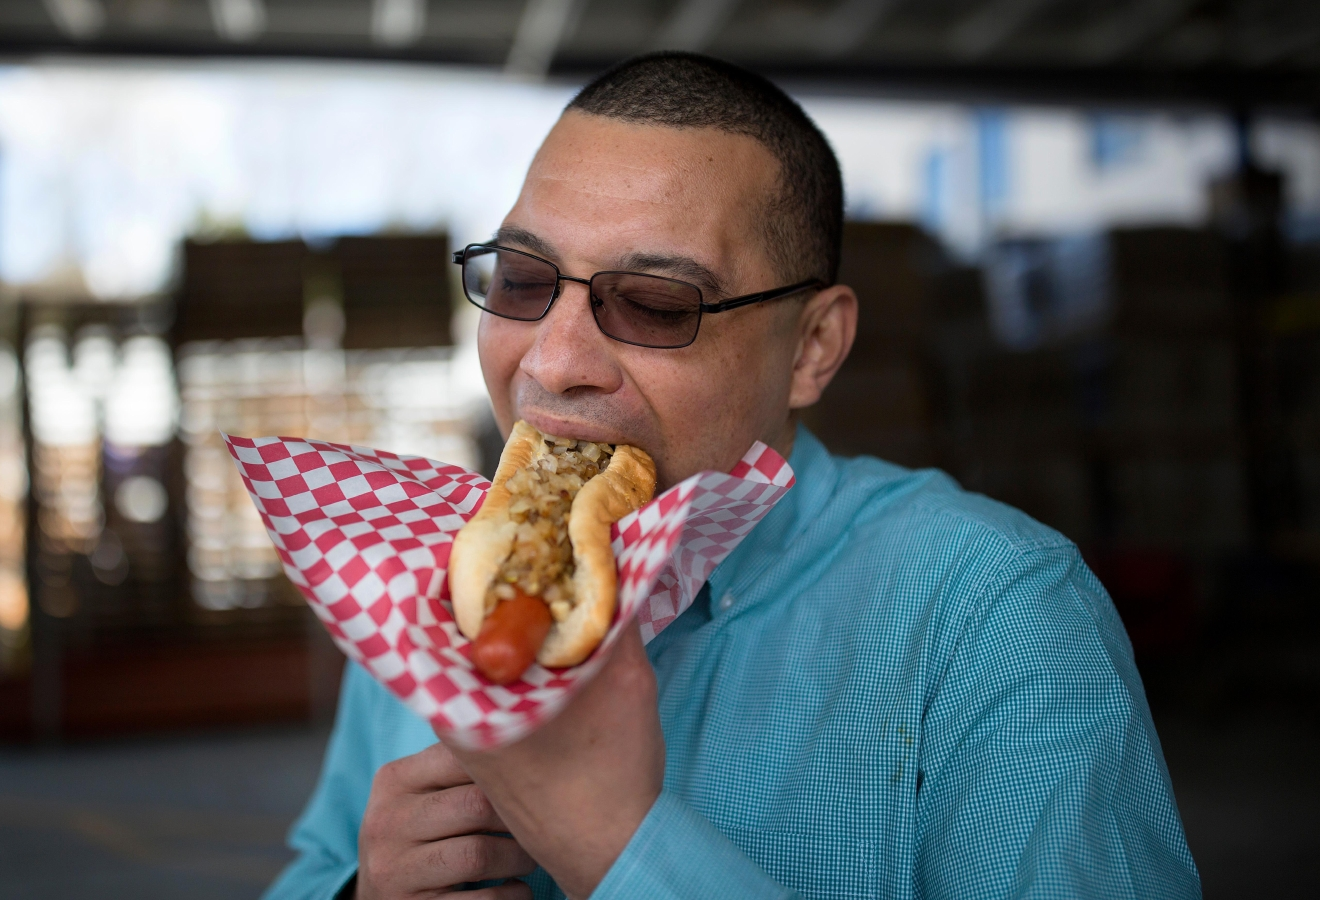 Alan Wedge, a regular of Rain City Hot Dogs, eats his favorite hotlink with Jamaican sauce, outside the Lowe's on Rainier Ave. (Sy Bean / Seattle Refined)